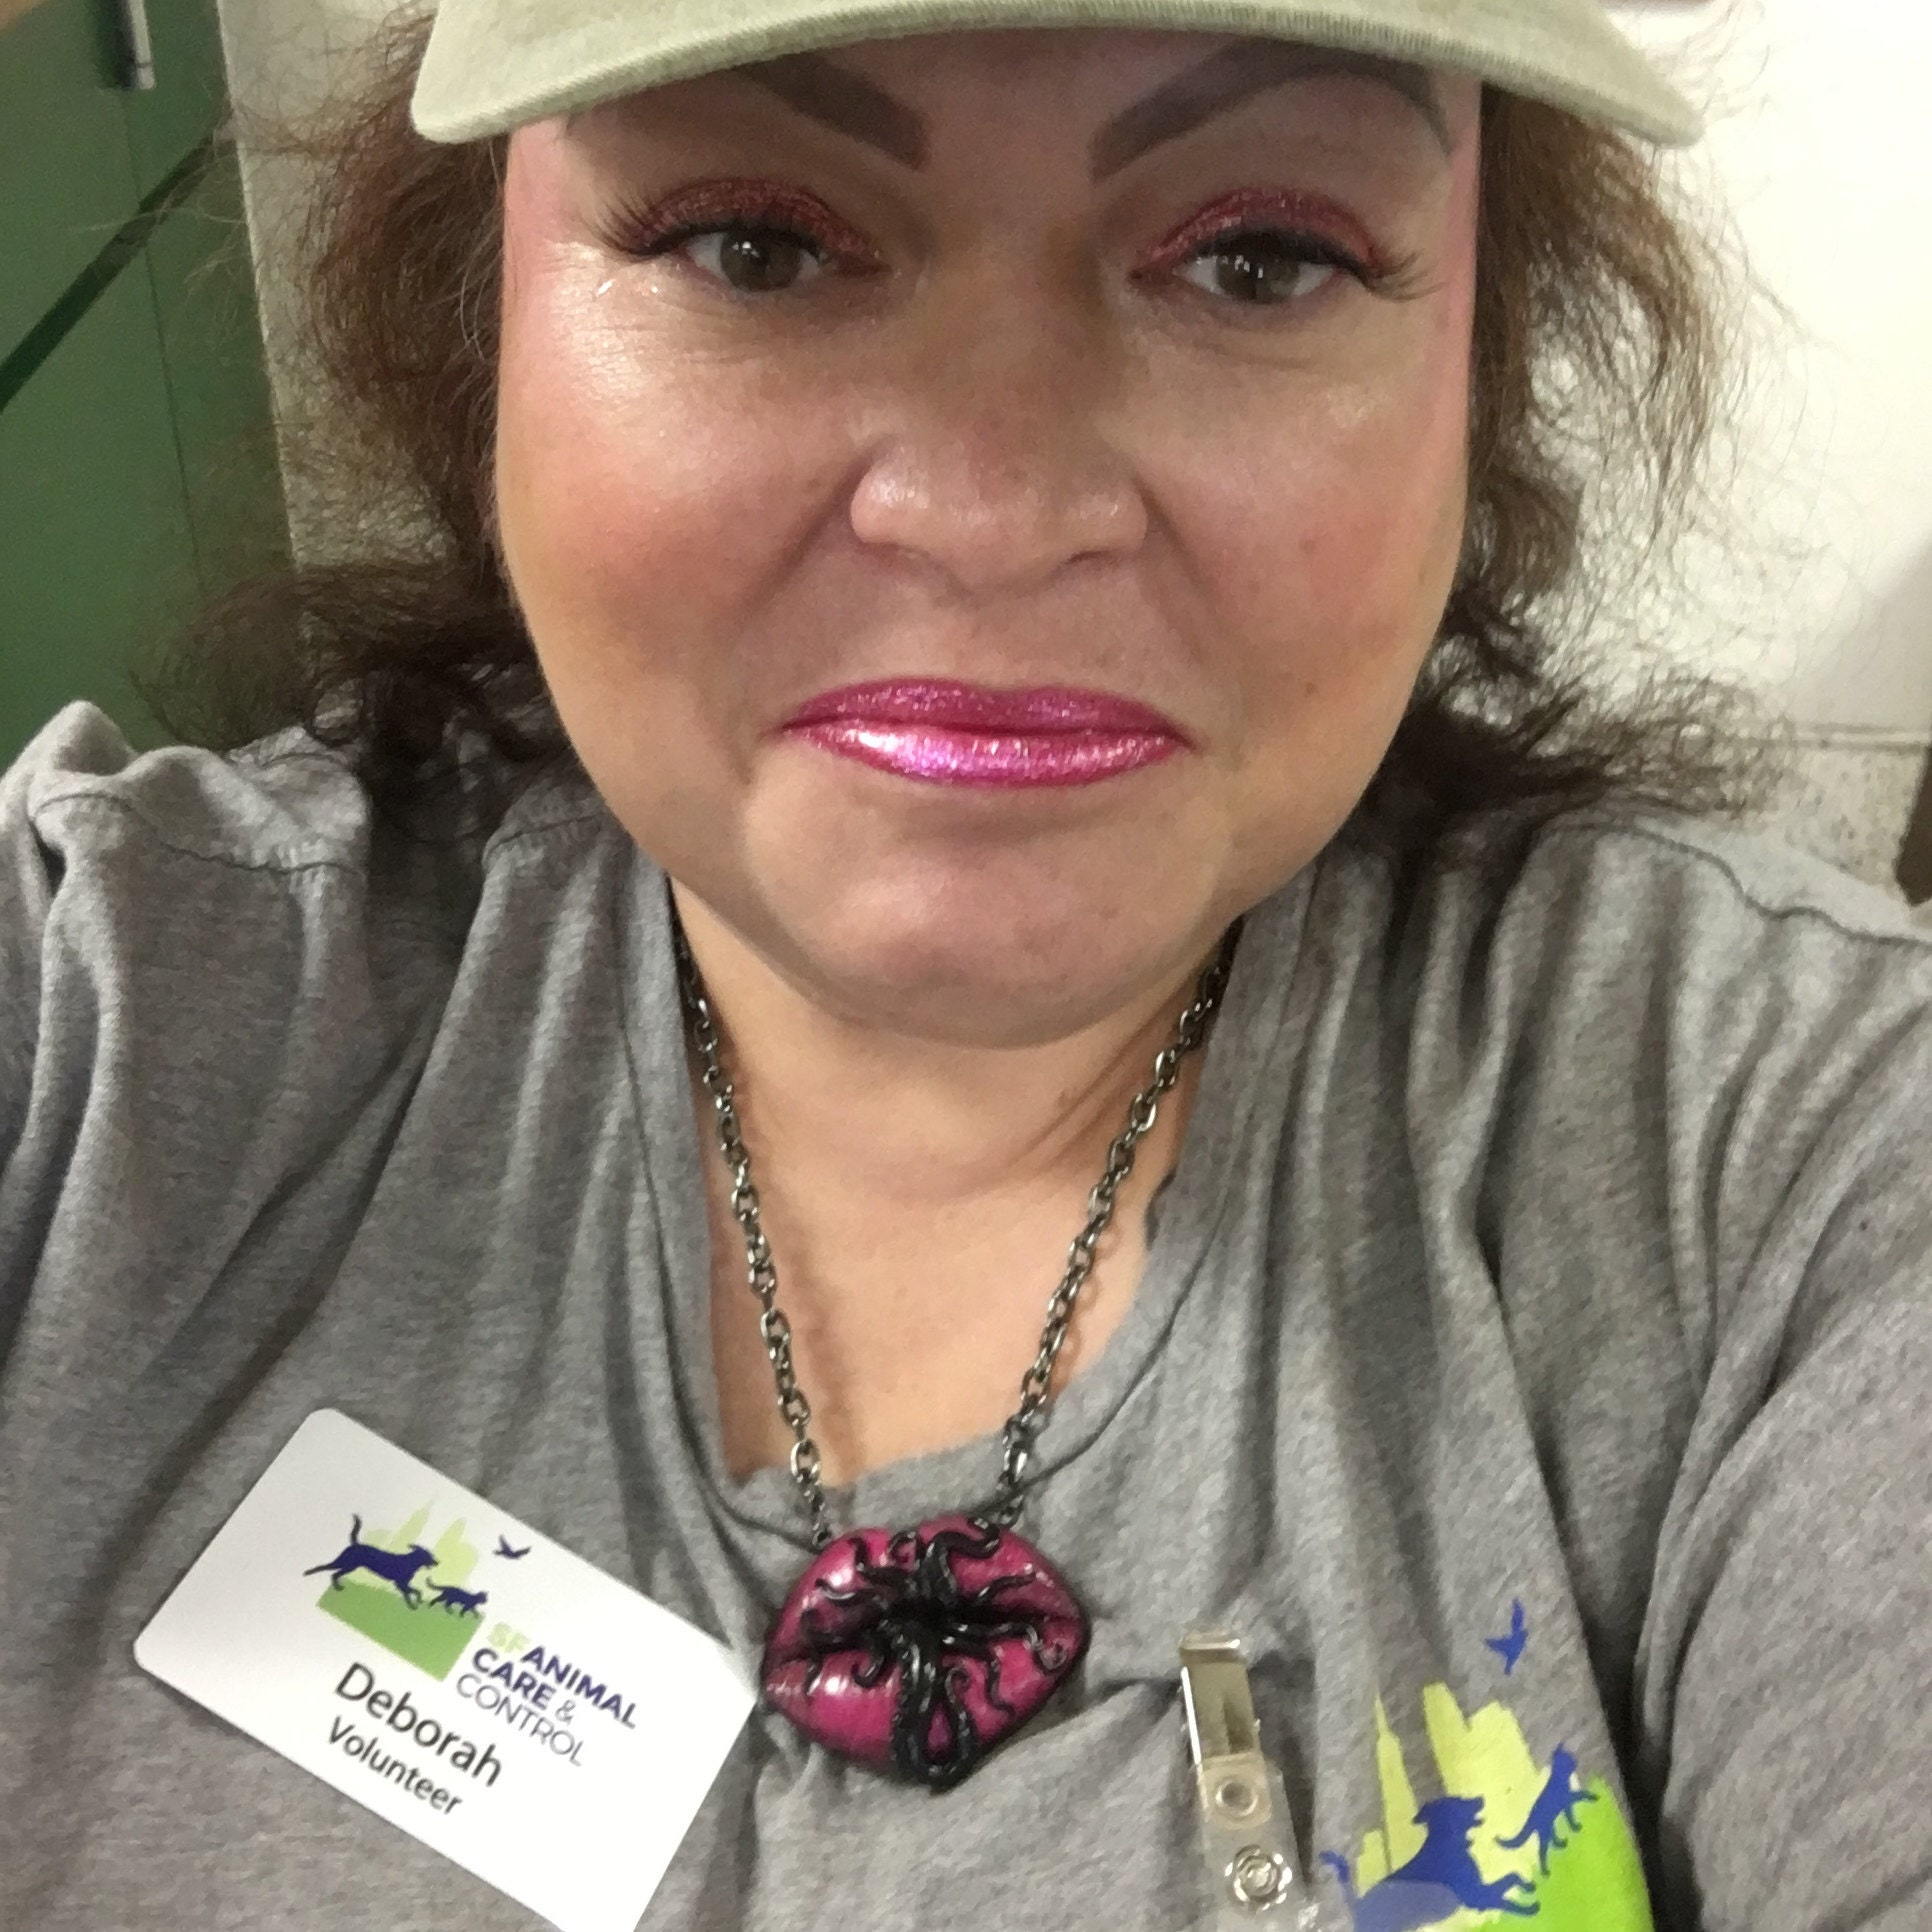 Deborah Peralta added a photo of their purchase